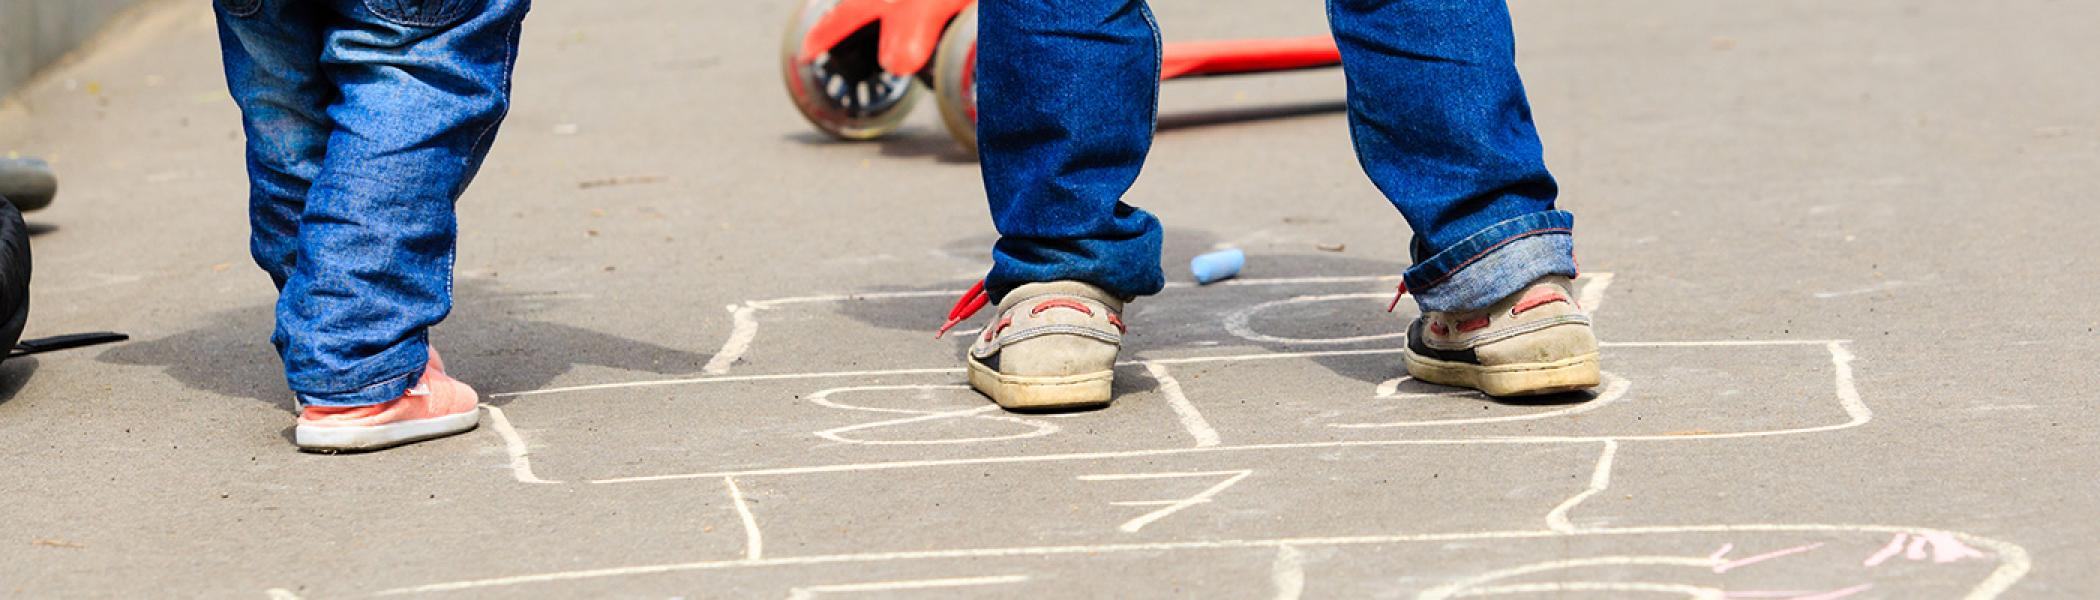 2 young children playing hopscotch on the concrete in a playground